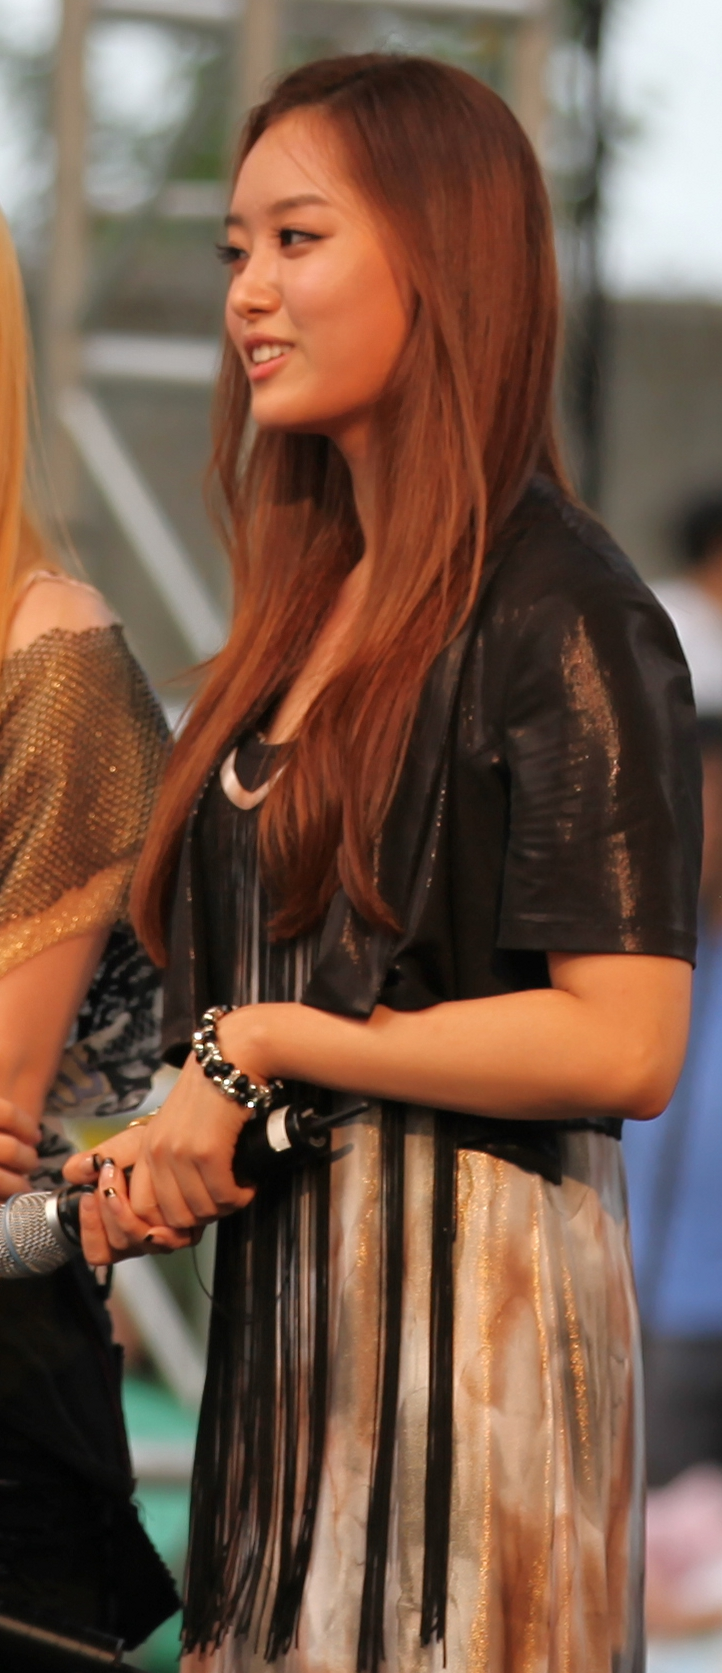 Jieun (cropped version).jpg